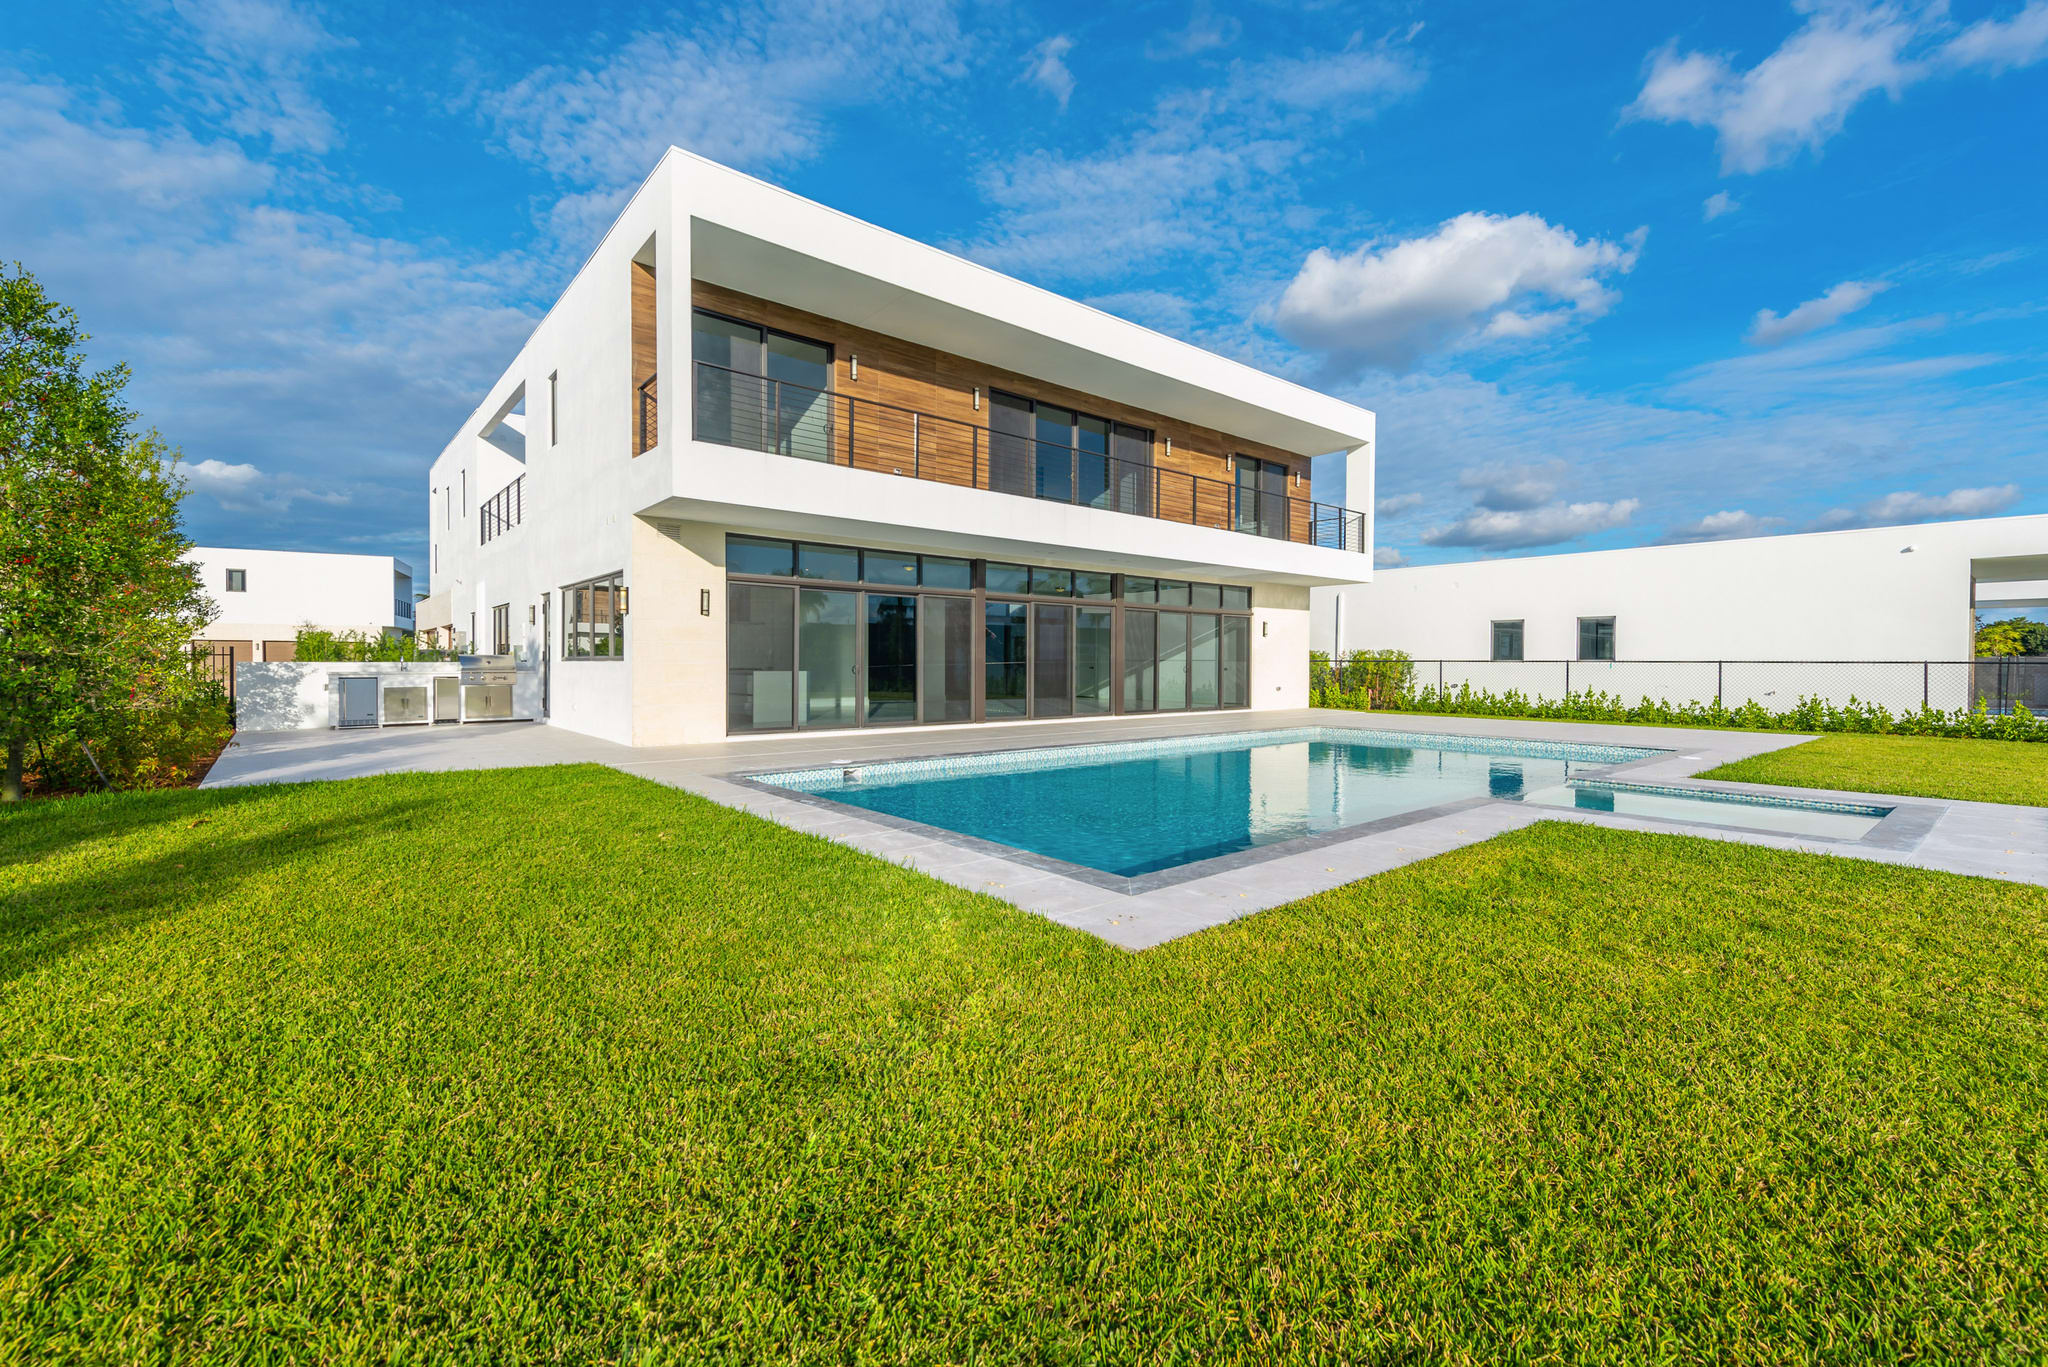 featured image of property, Oppenheim Luxury Residence 04-W